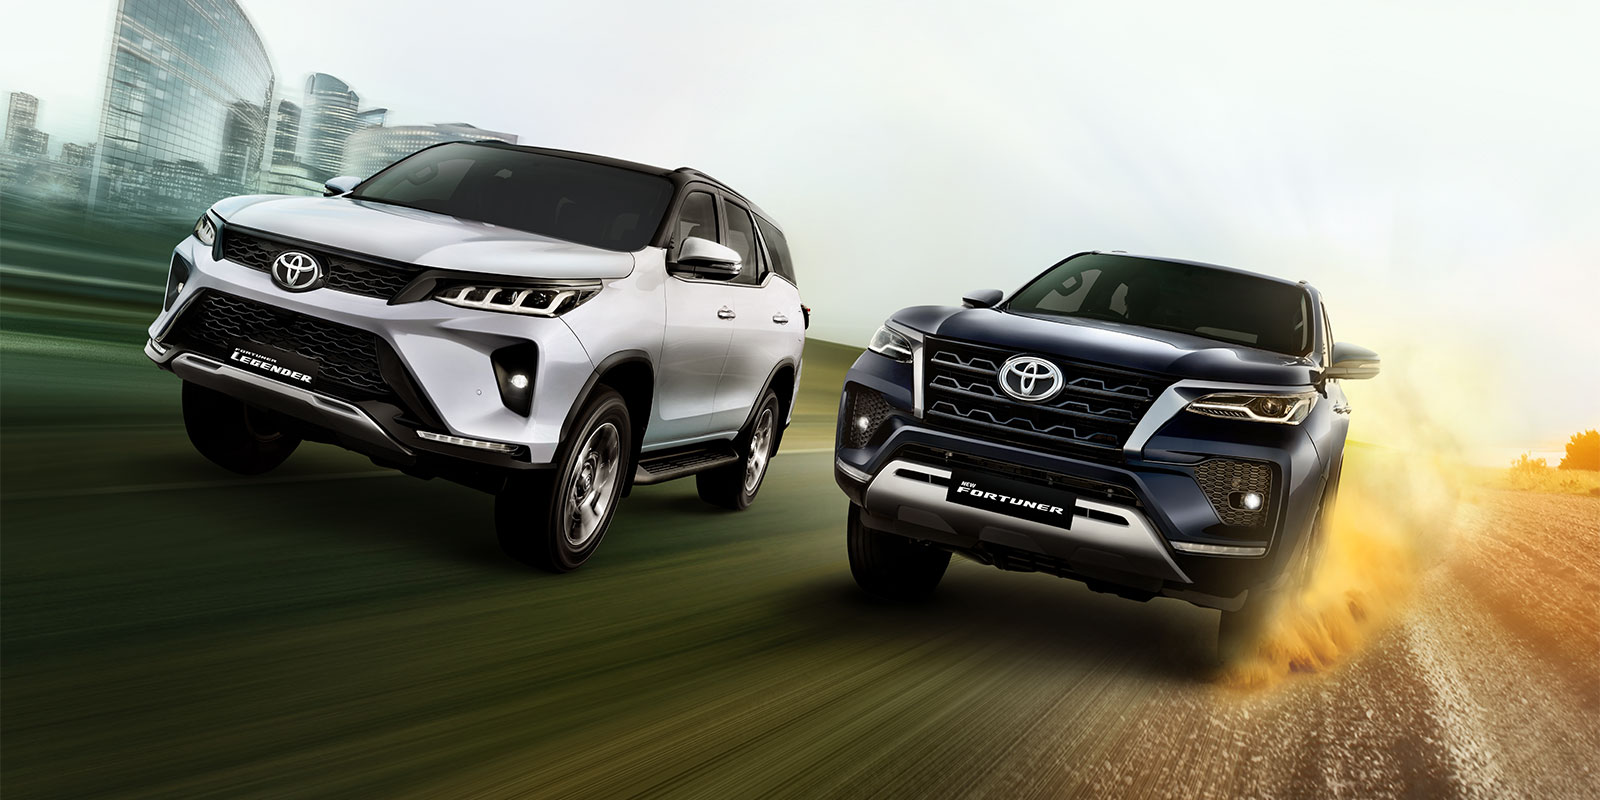 New Toyota Fortuner and the new Fortuner Legender